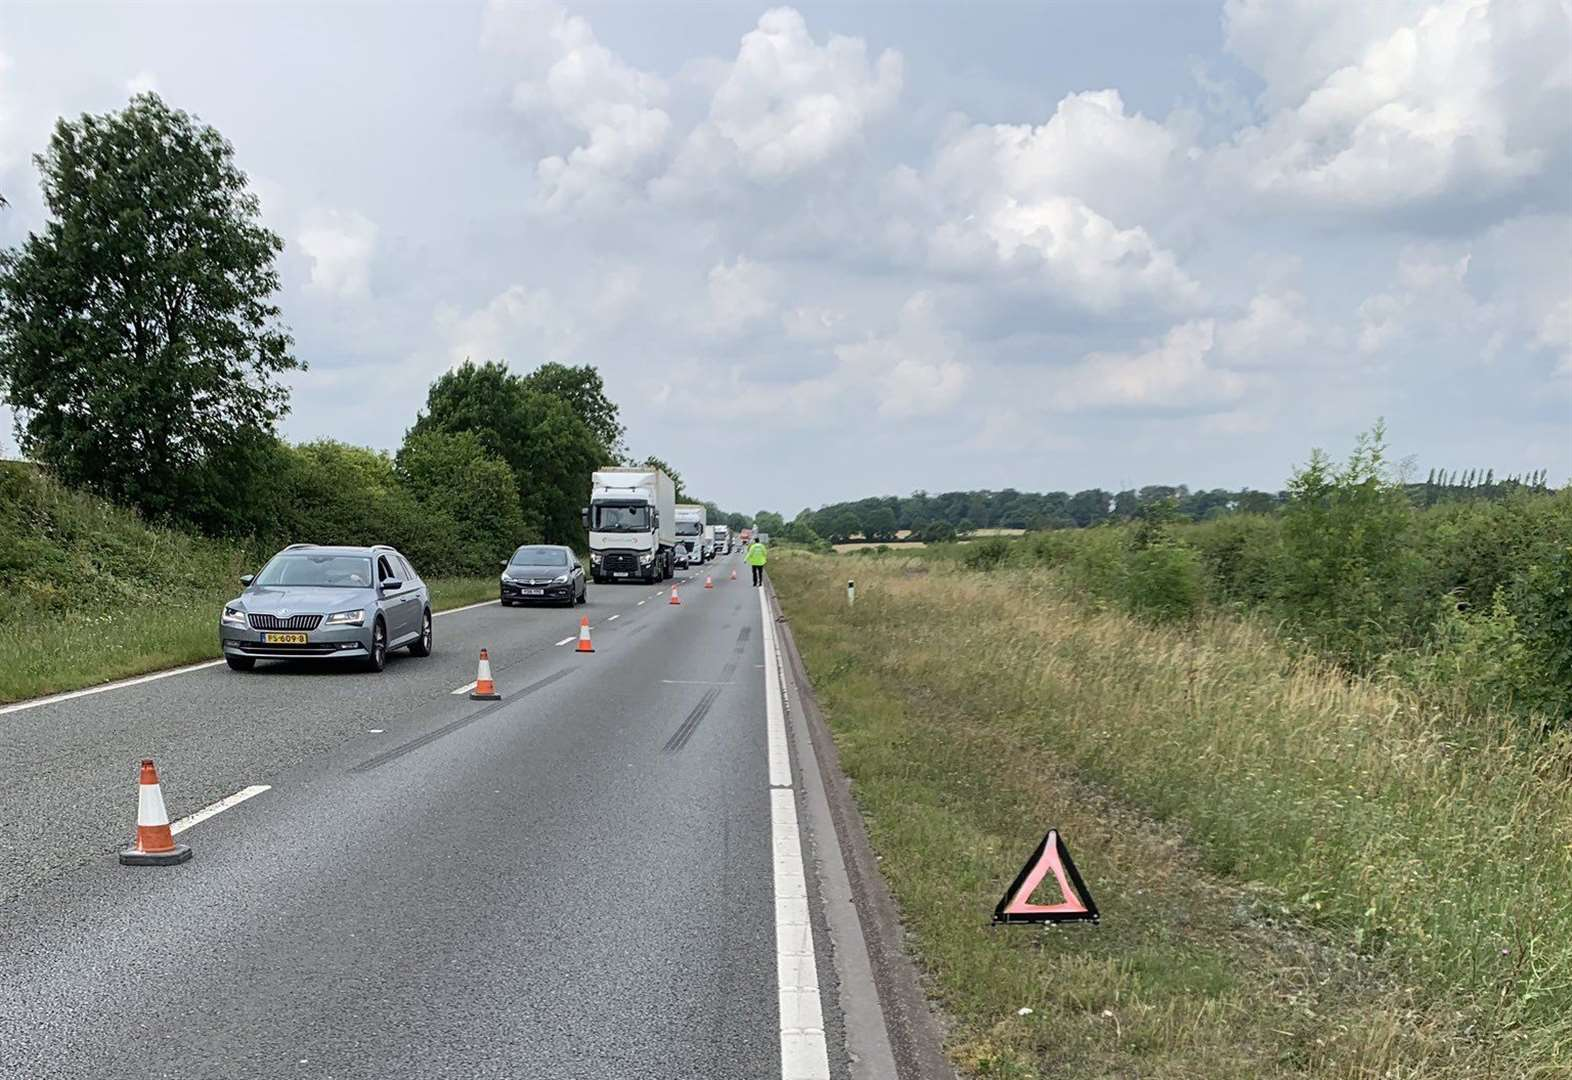 One lane closed on the A1 in Rutland